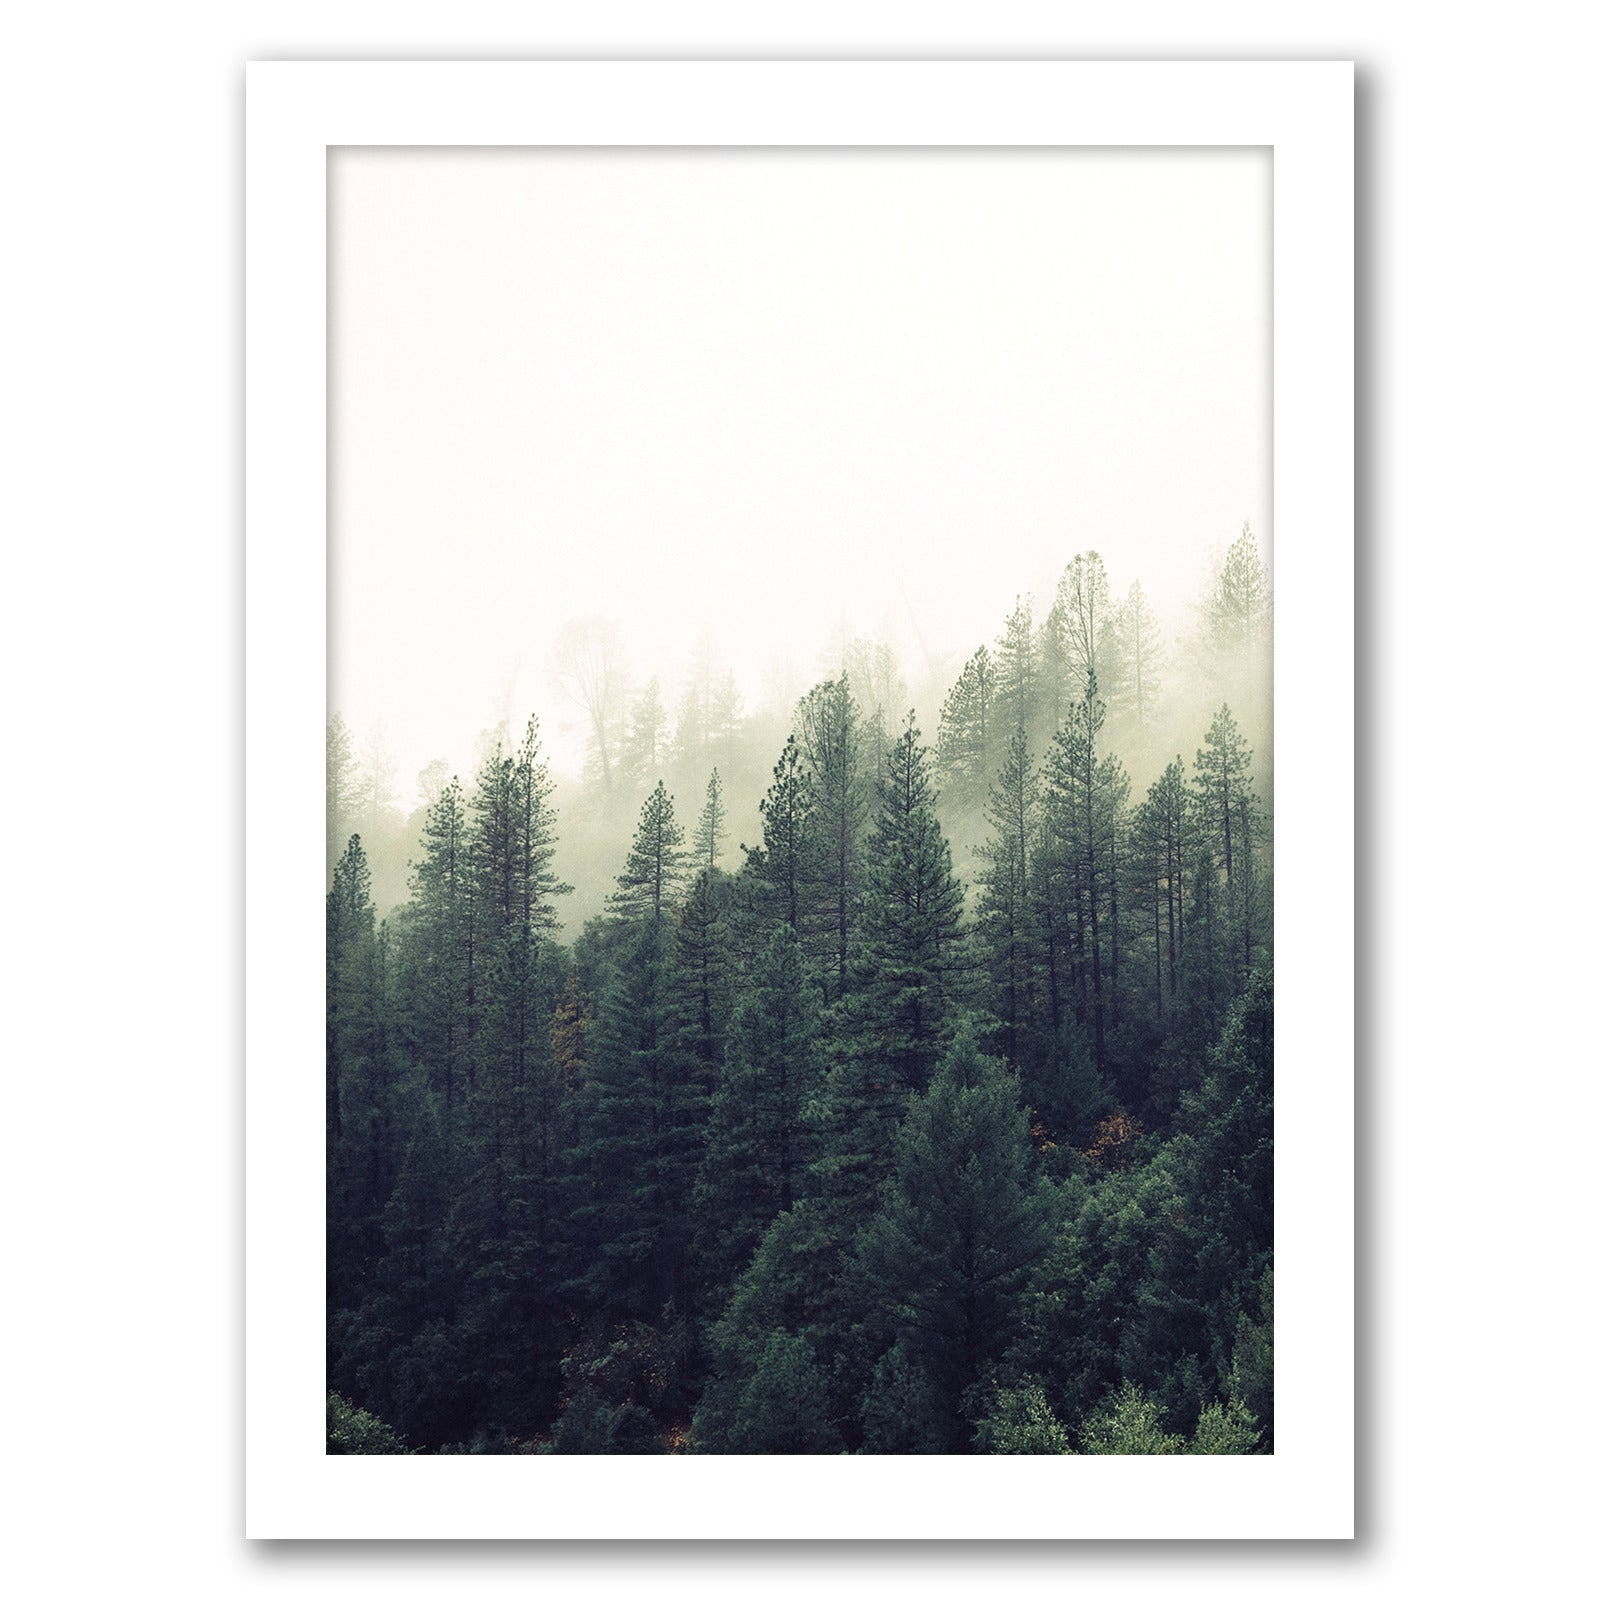 Forest Art by Tanya Shumkina - White Framed Print - Wall Art - Americanflat